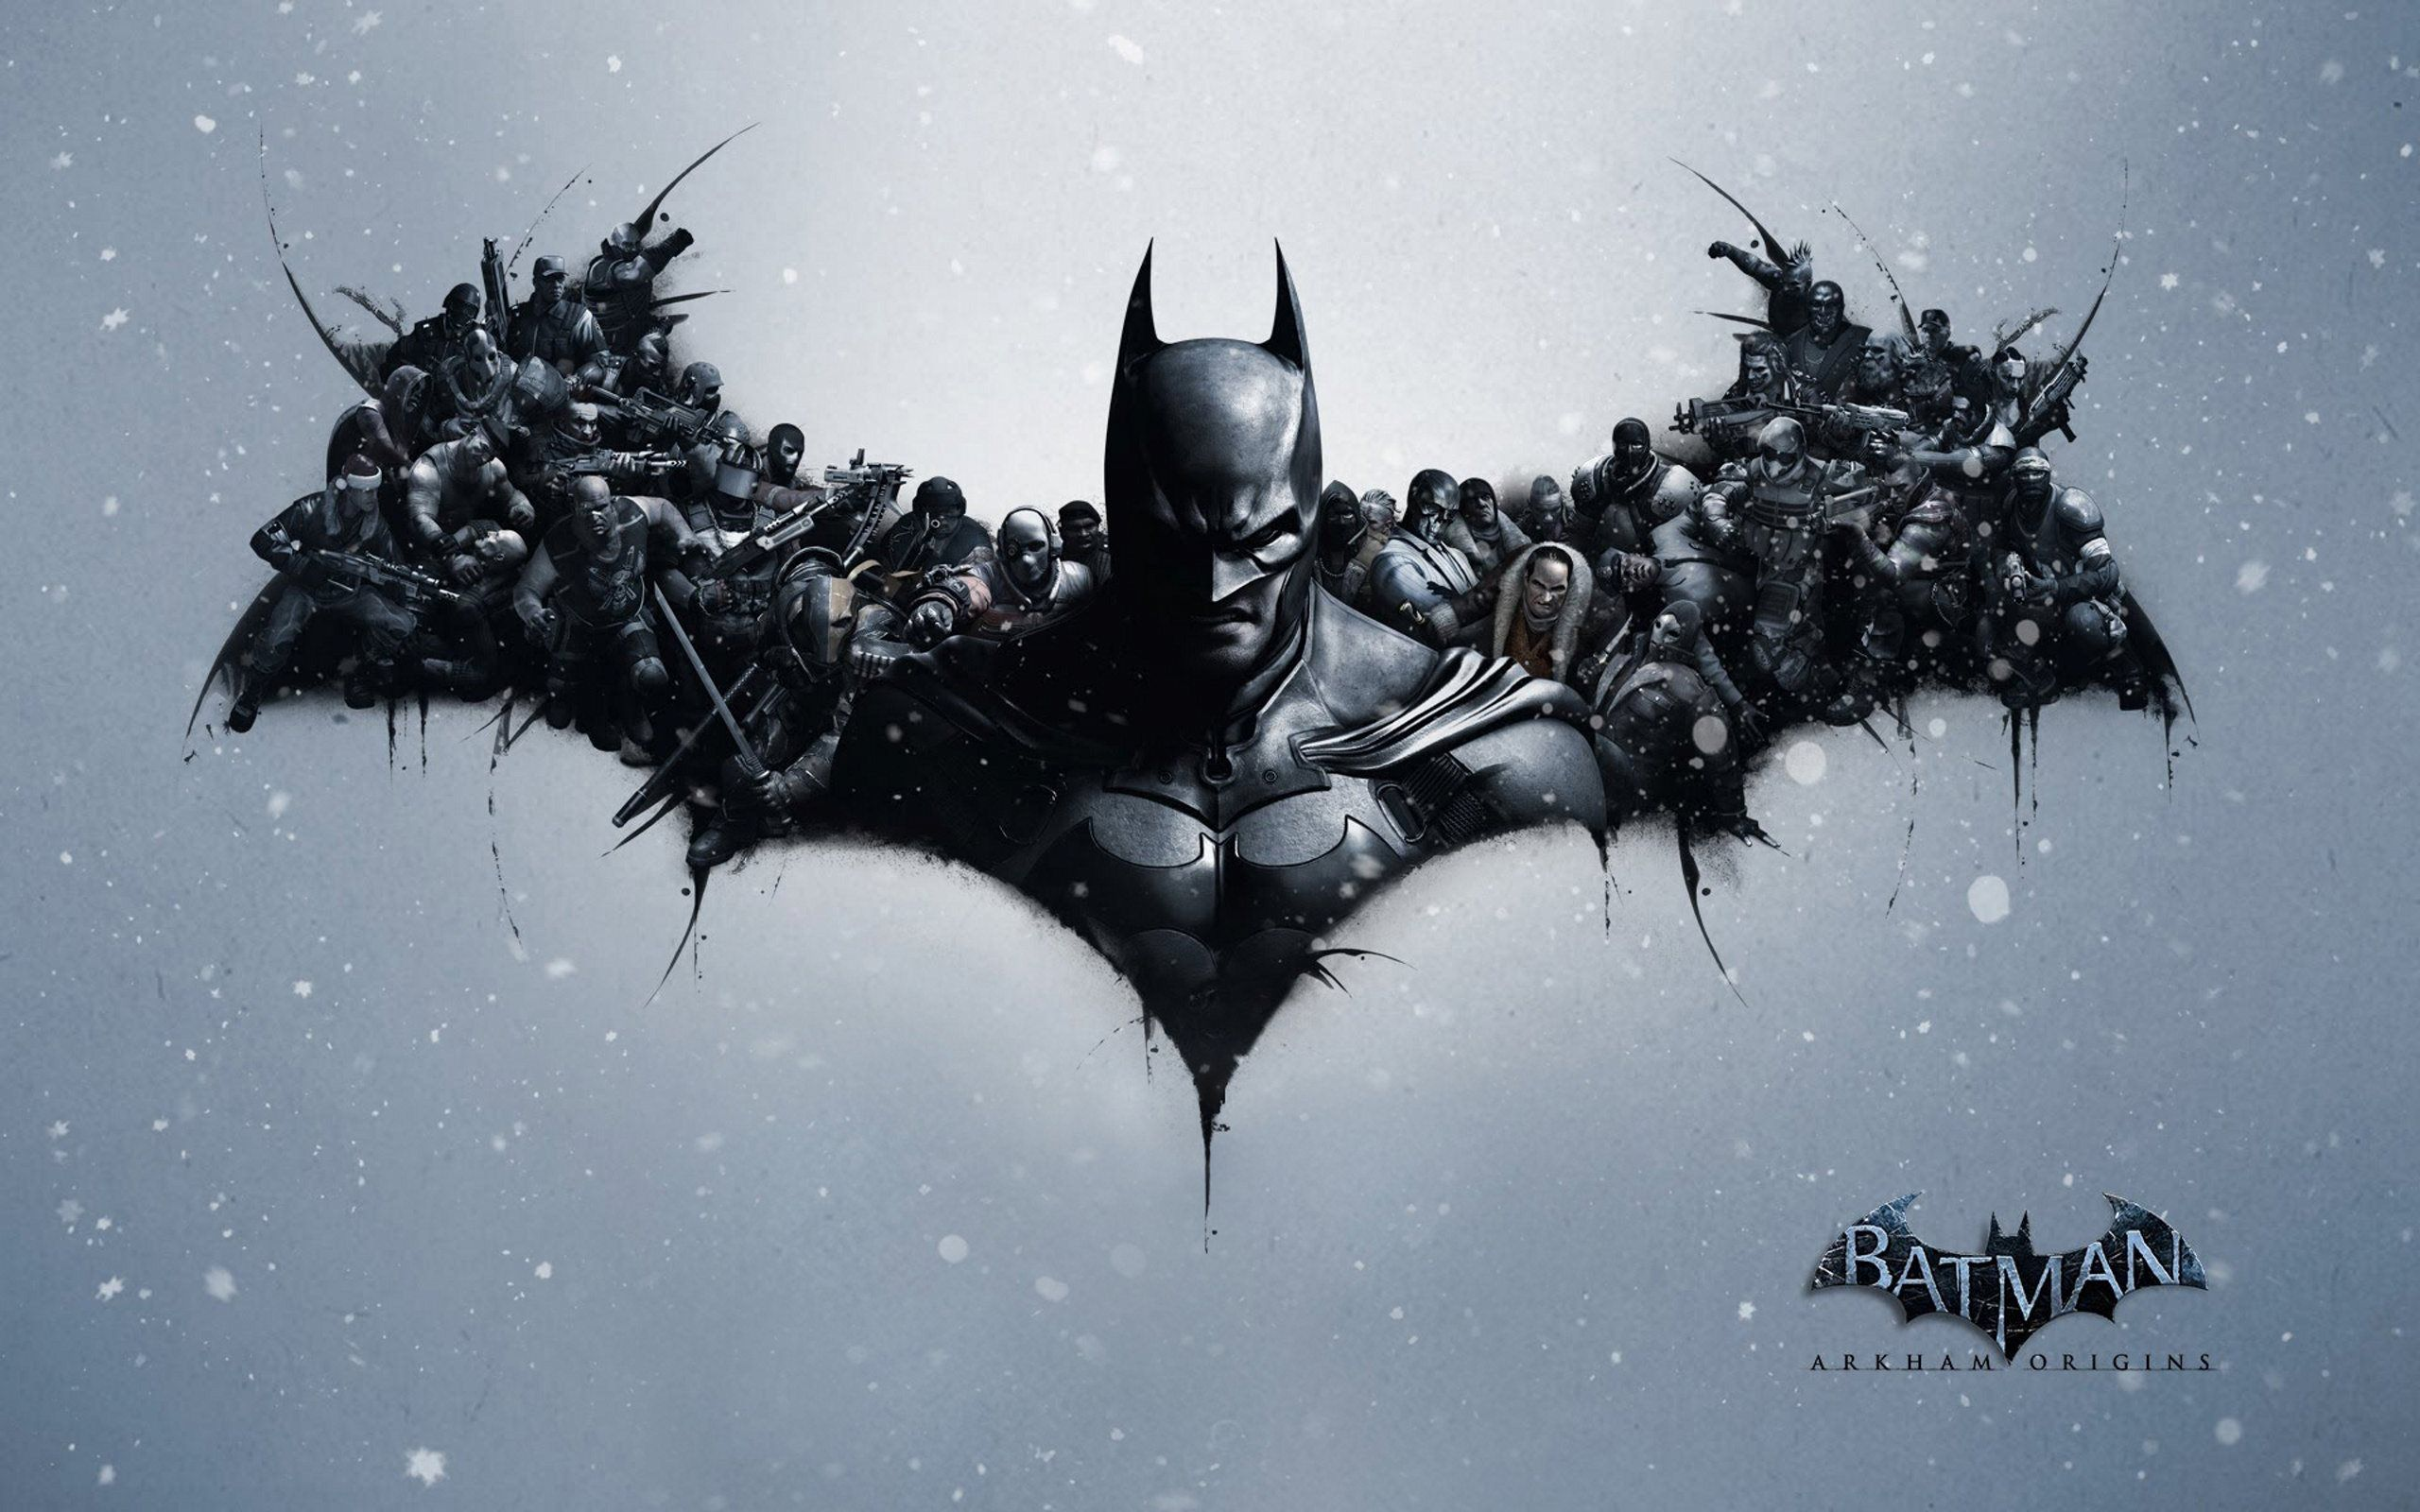 Image For Best Hd Wallpaper Gookep Batman Image Picture Awesome Amazing Shoot Photography Batman Poster Batman Arkham Origins Batman Wallpaper